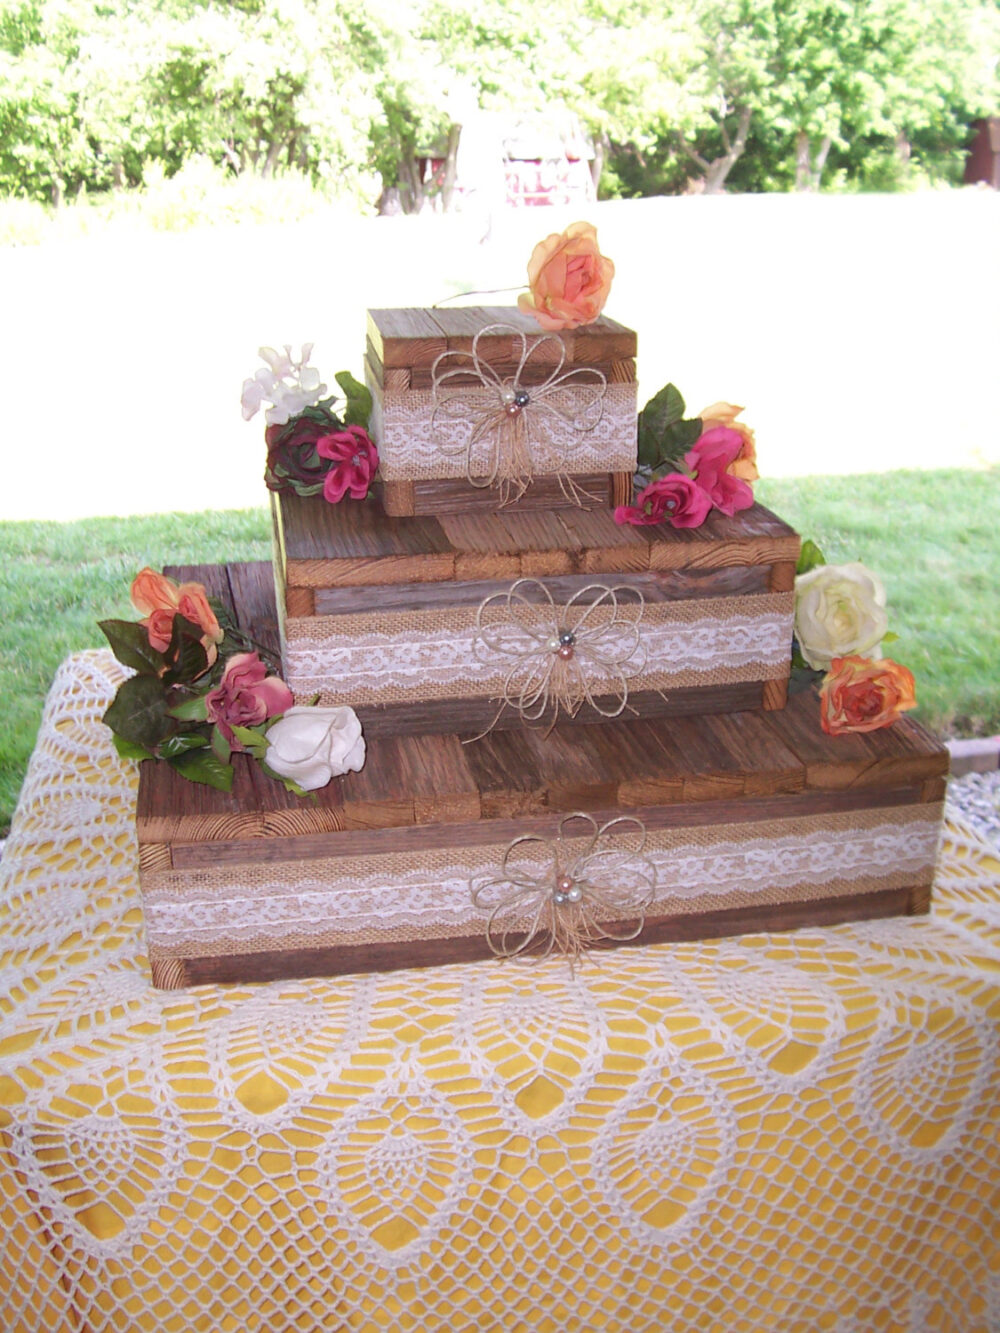 Wedding Cake Stand Reception Decorations Cupcake Stands 3 Tier Rustic Wood Burlap Lace Reception Reclaimed Vintage Wedding Country